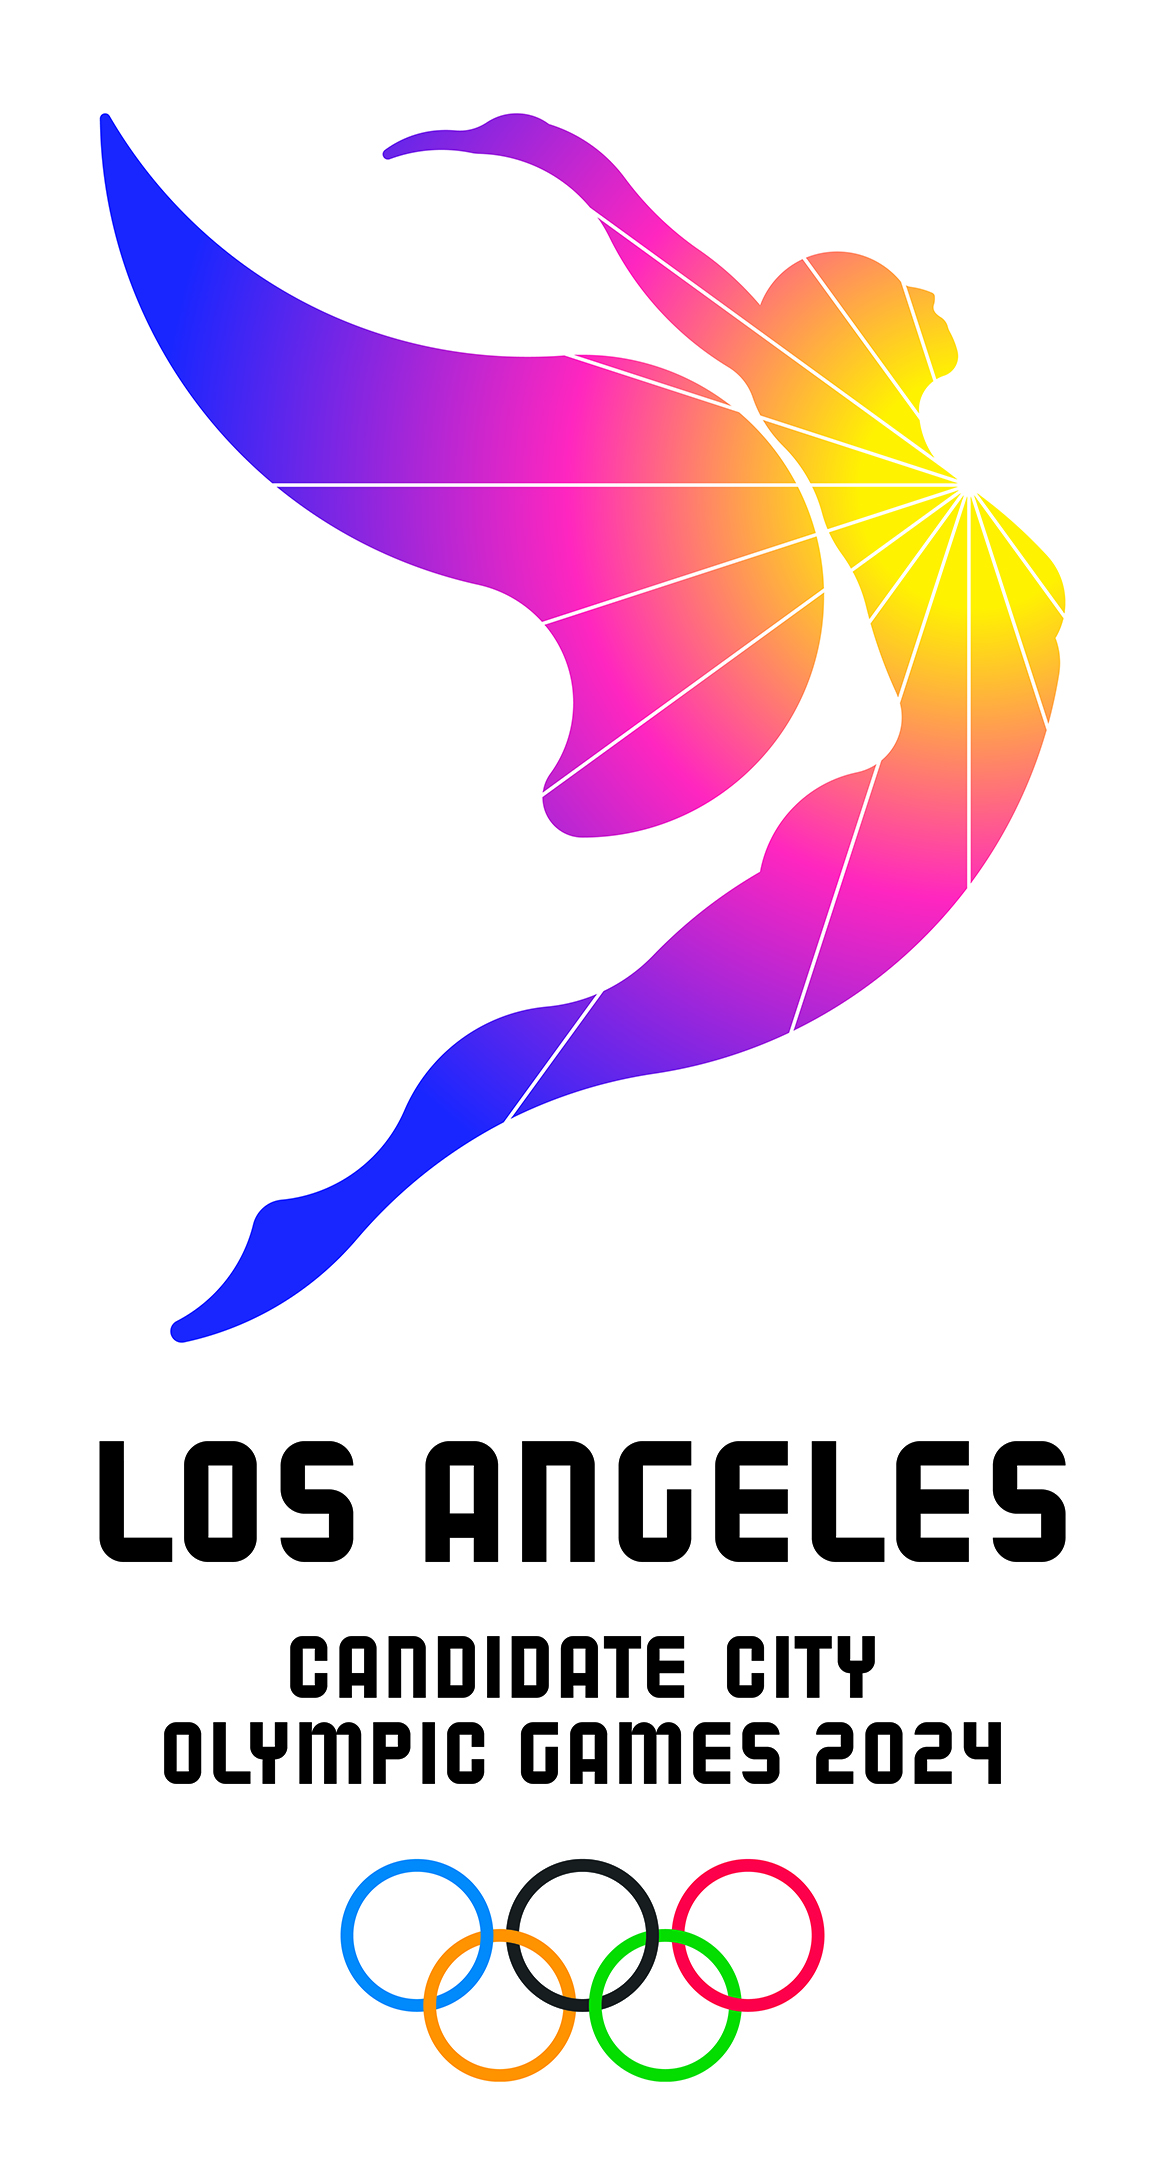 la_olympics_280116_angel_logo+type+rings+holding+fts